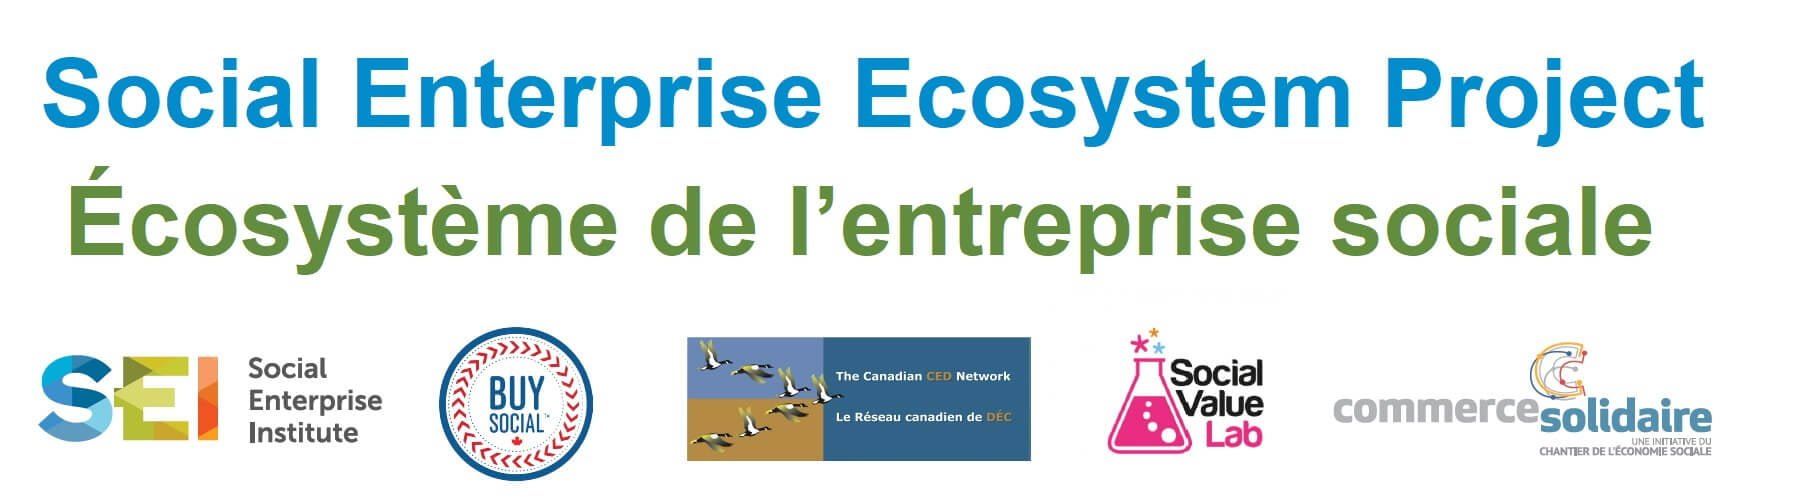 social enterprise ecosystem project